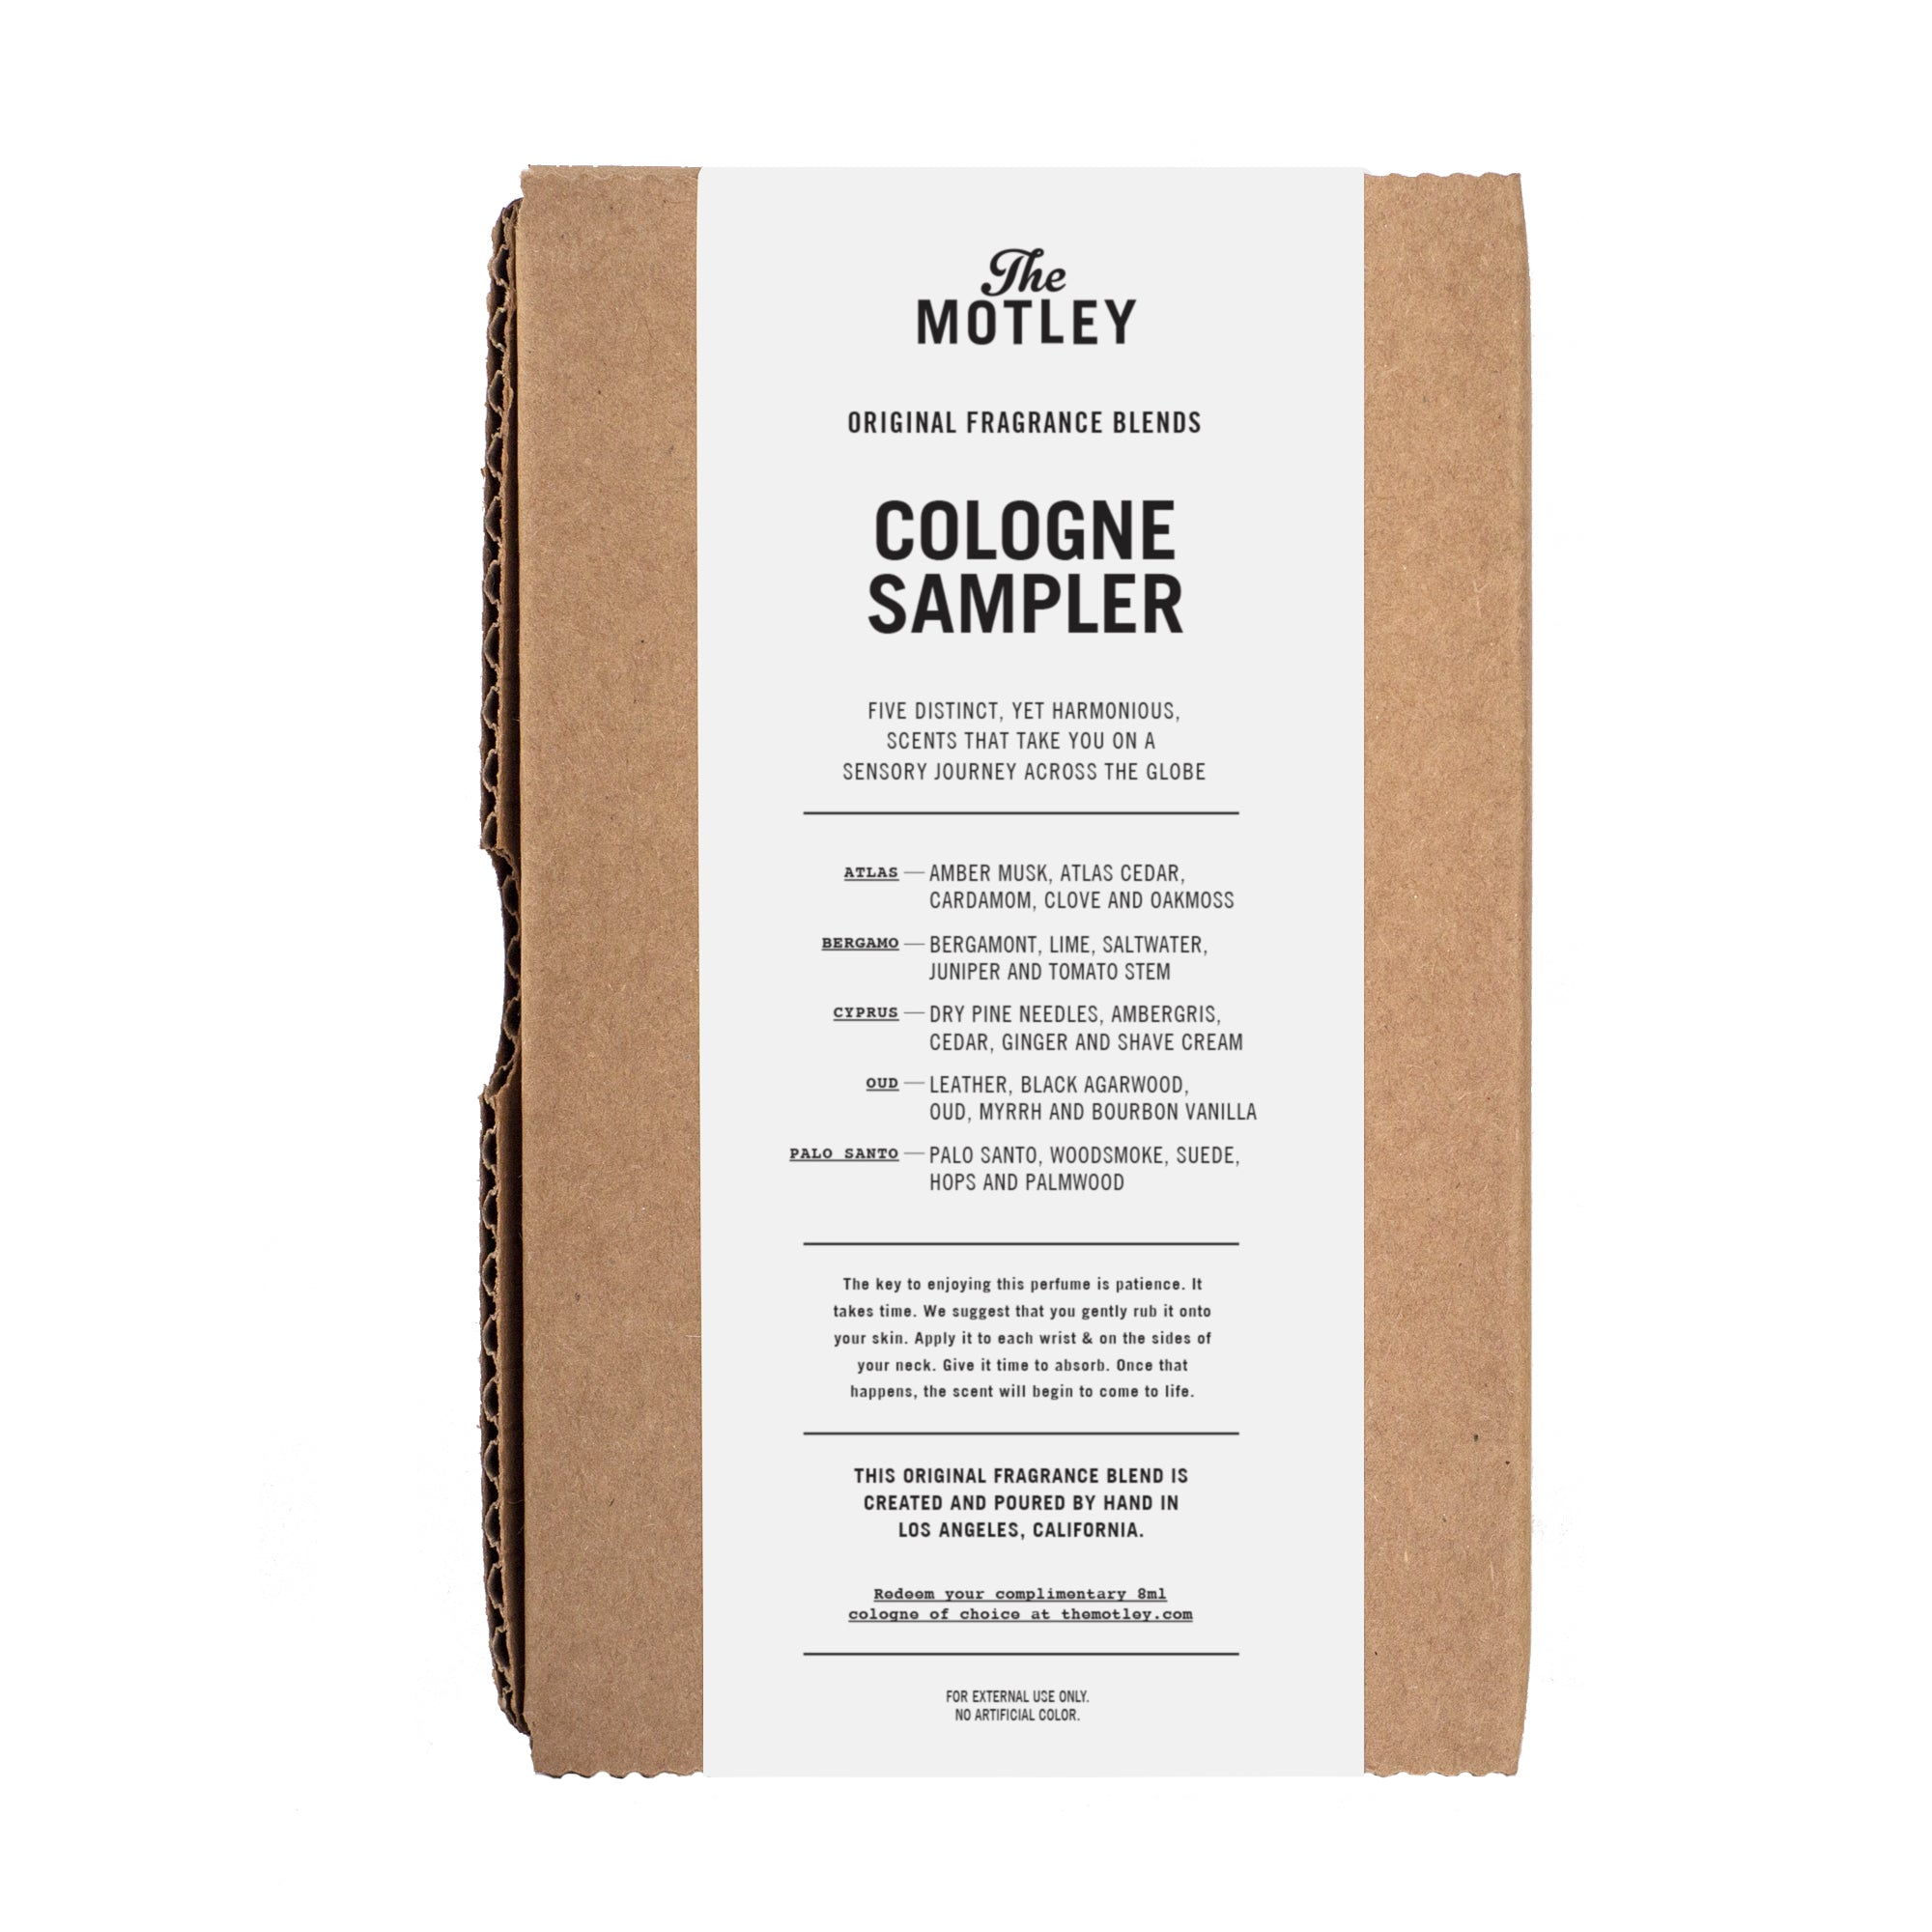 The Motley Cologne Sampler + Certificate - The Motley